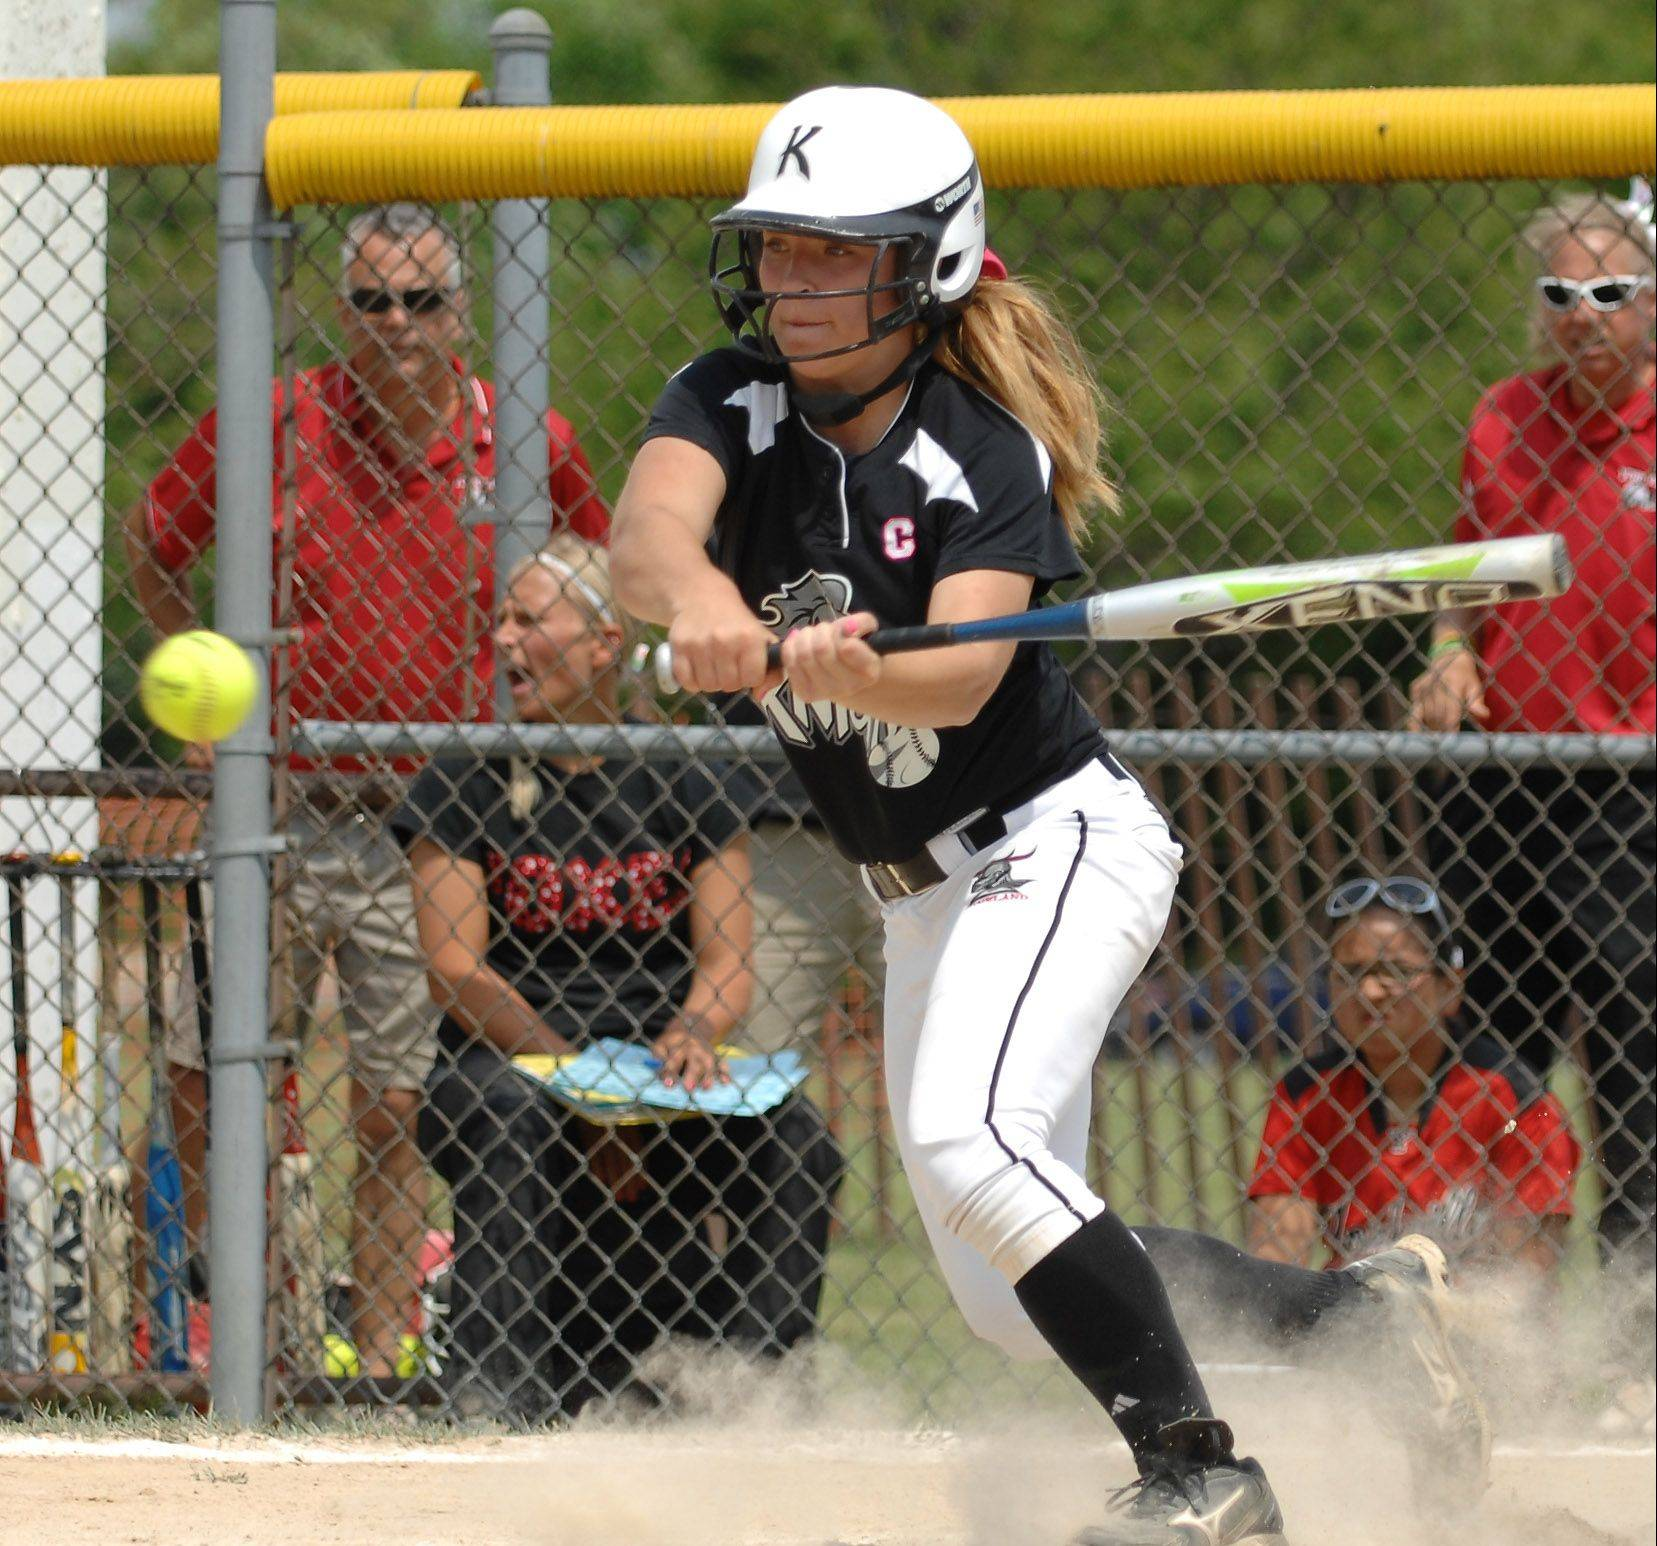 Kaneland's Delani Vest hit .448 this season, capping her four years with the Knights when she finished with a career average over .400 and won 50 games in the circle.